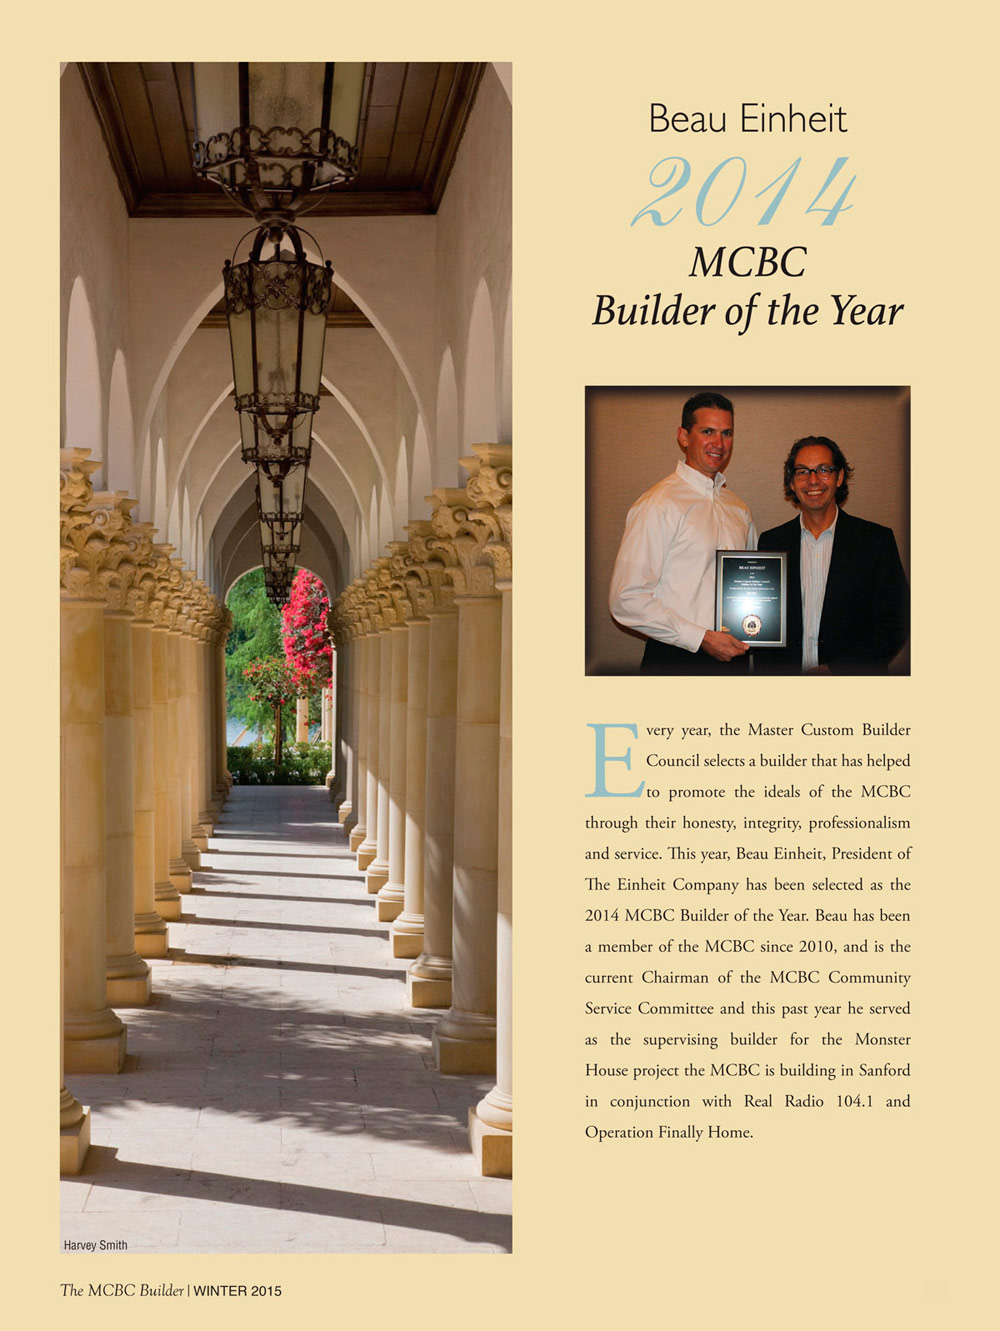 MCBC Builder of the Year